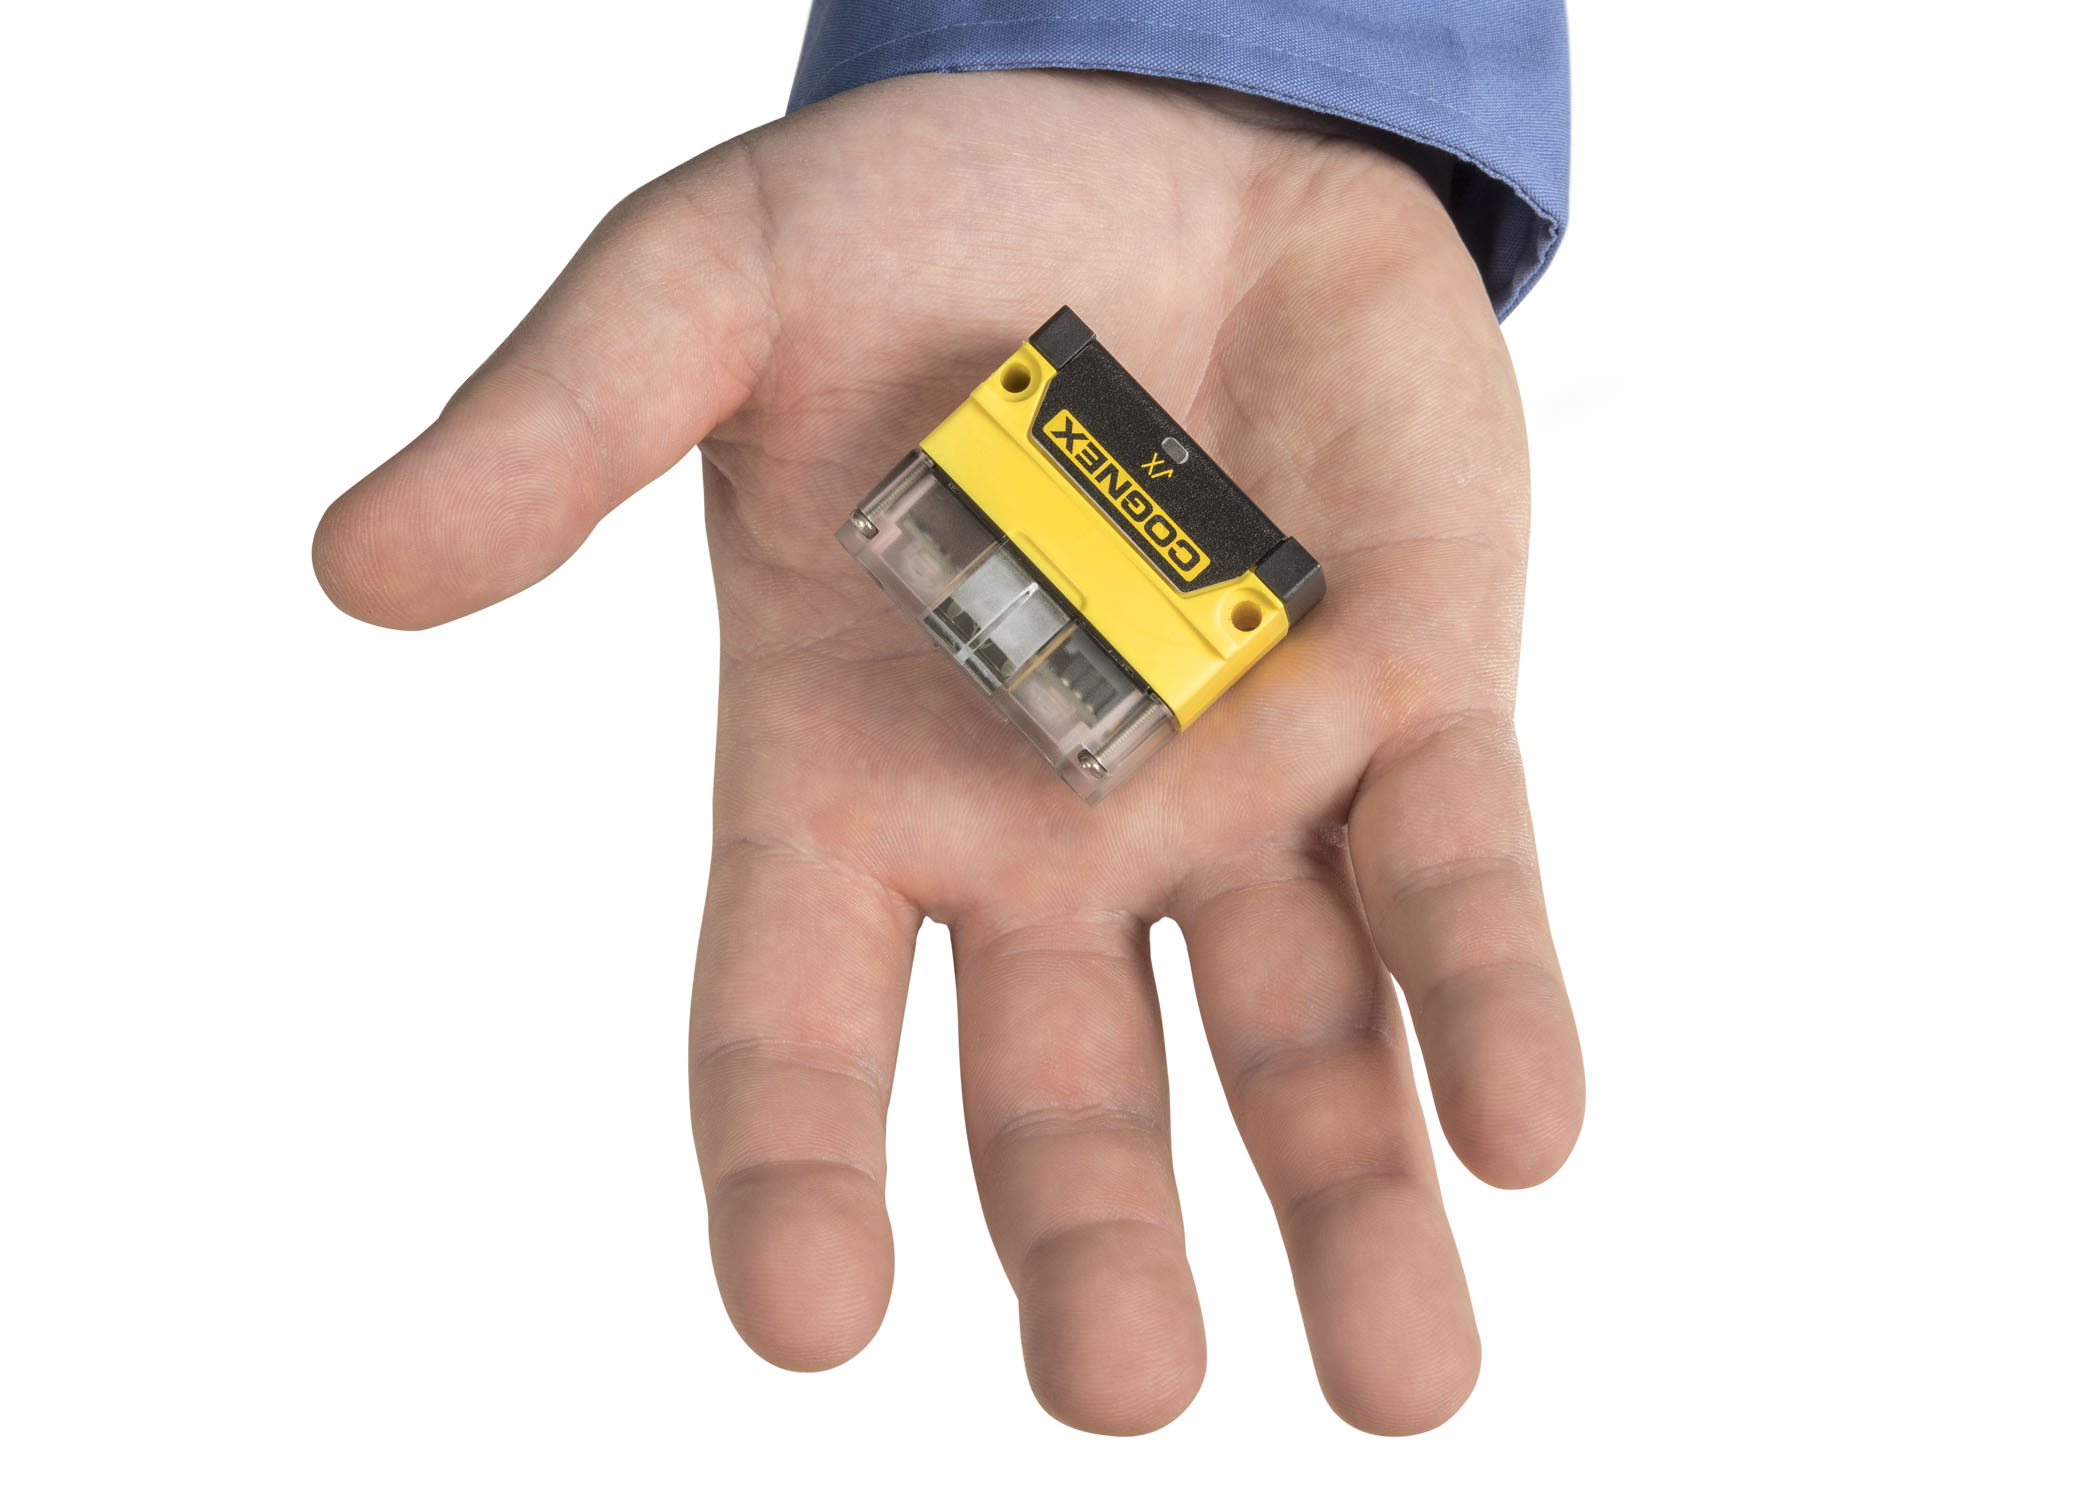 Guy with cognex dataman dm70 barcode reader in palm of hand